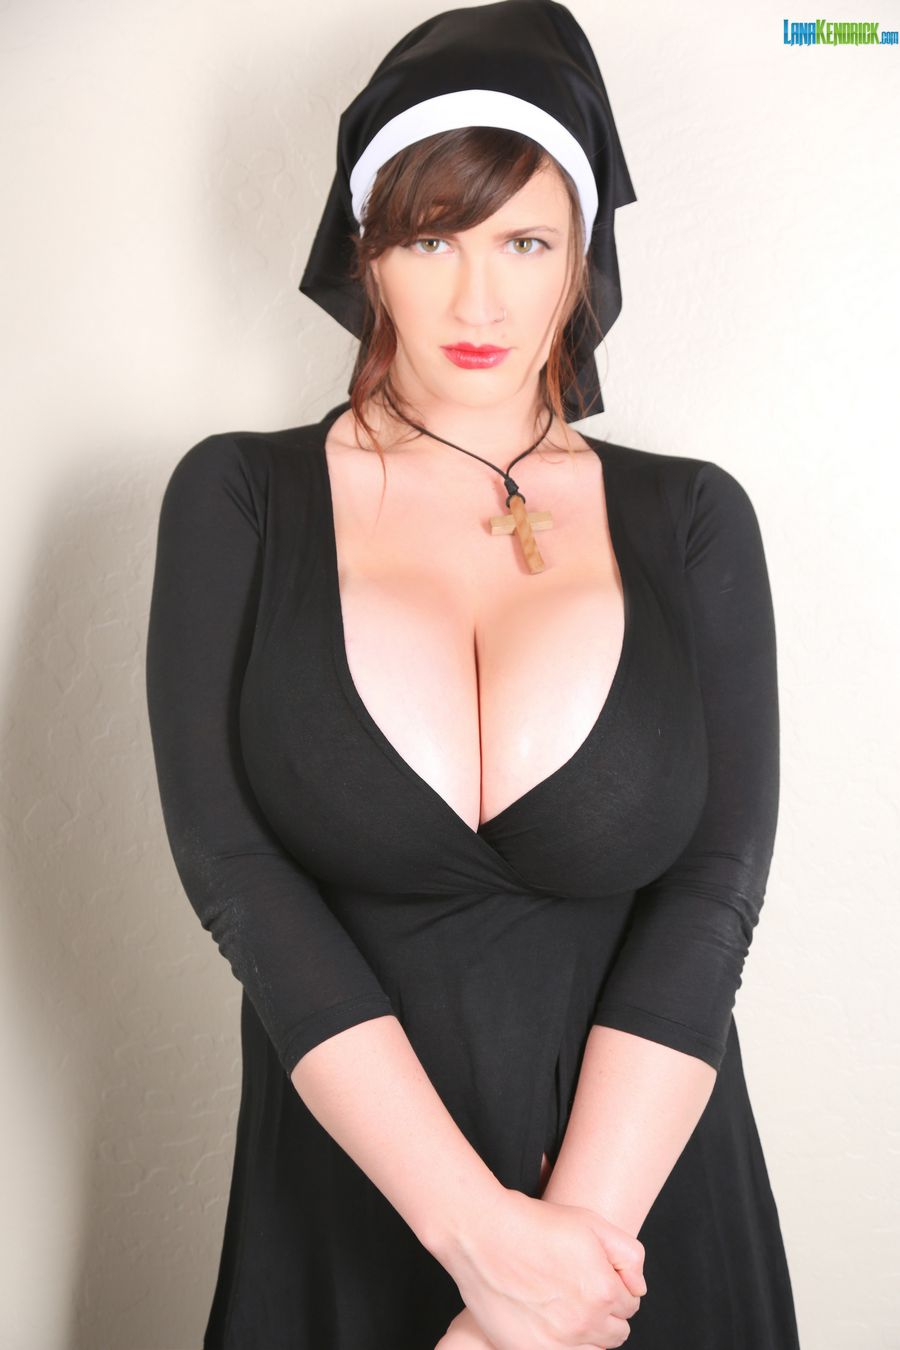 PHOTO | LanaKendrickHalloweenNun1 - BUSTY GODDESS Lana Kendrick dressed up as a Naughty Nun for This Halloween